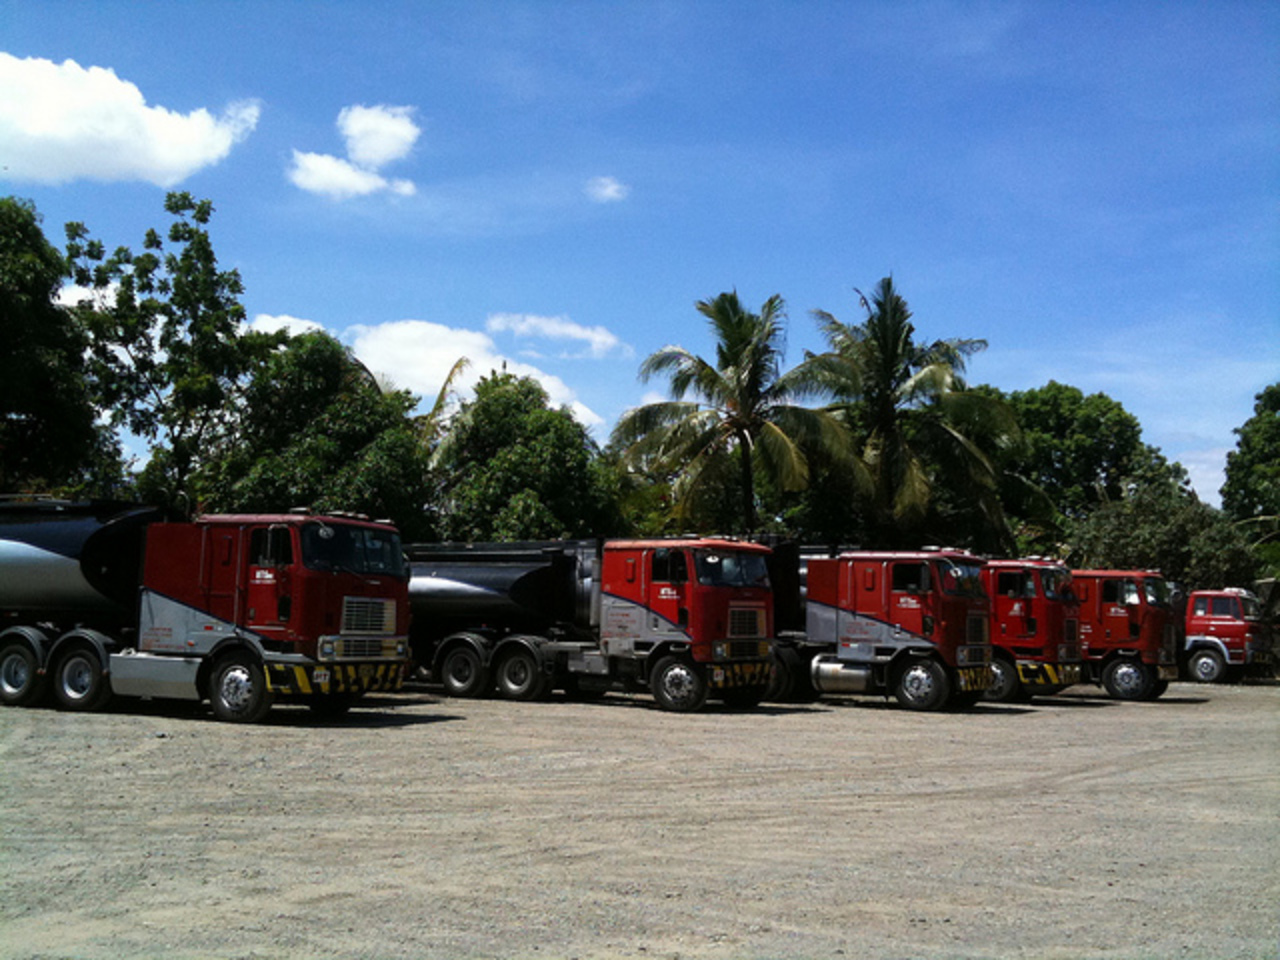 Flickr: The Tanker Truck in Philippines Pool